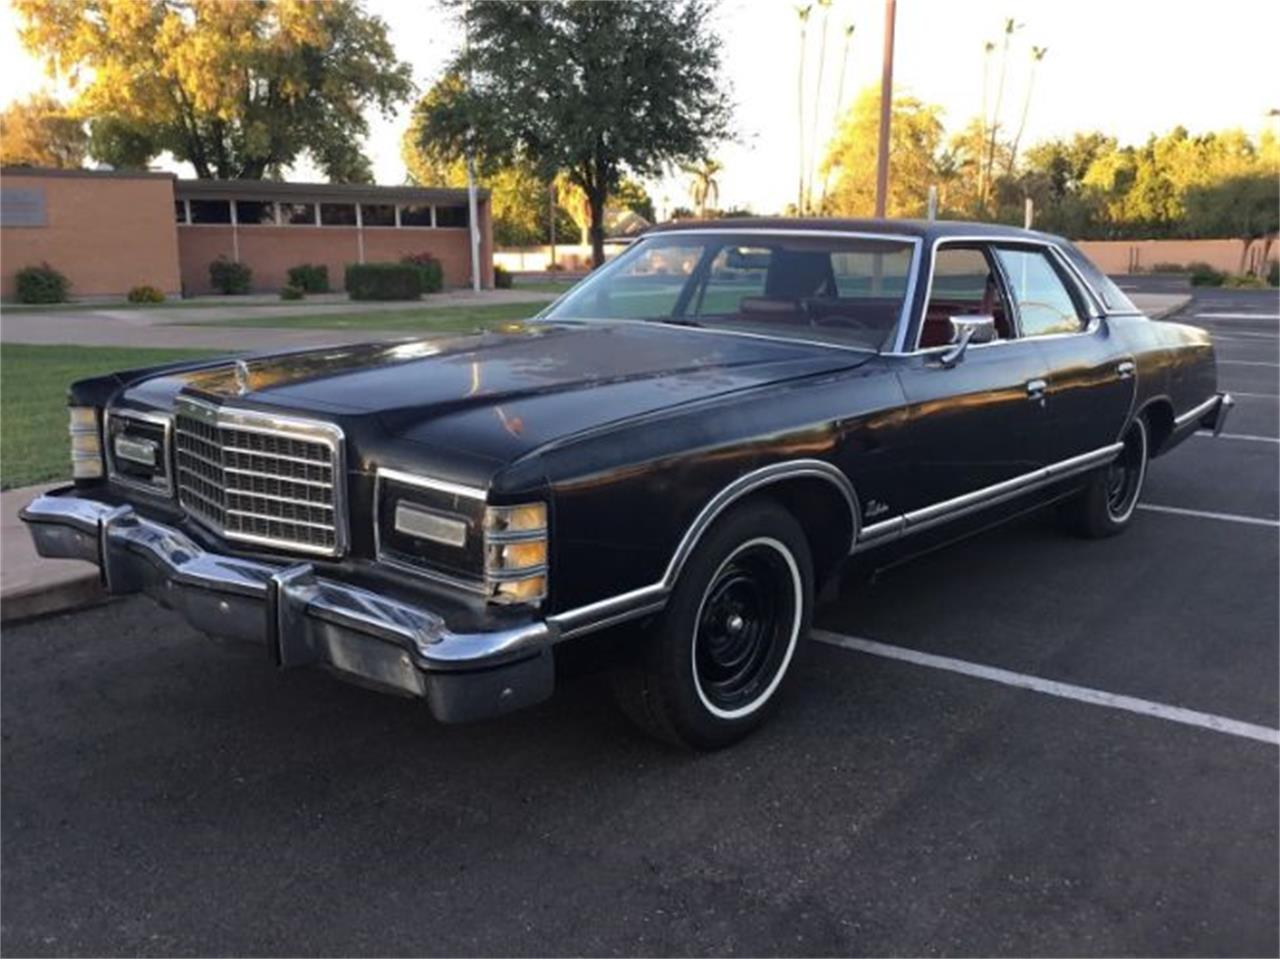 Large picture of 78 ford ltd 3295 00 oab8